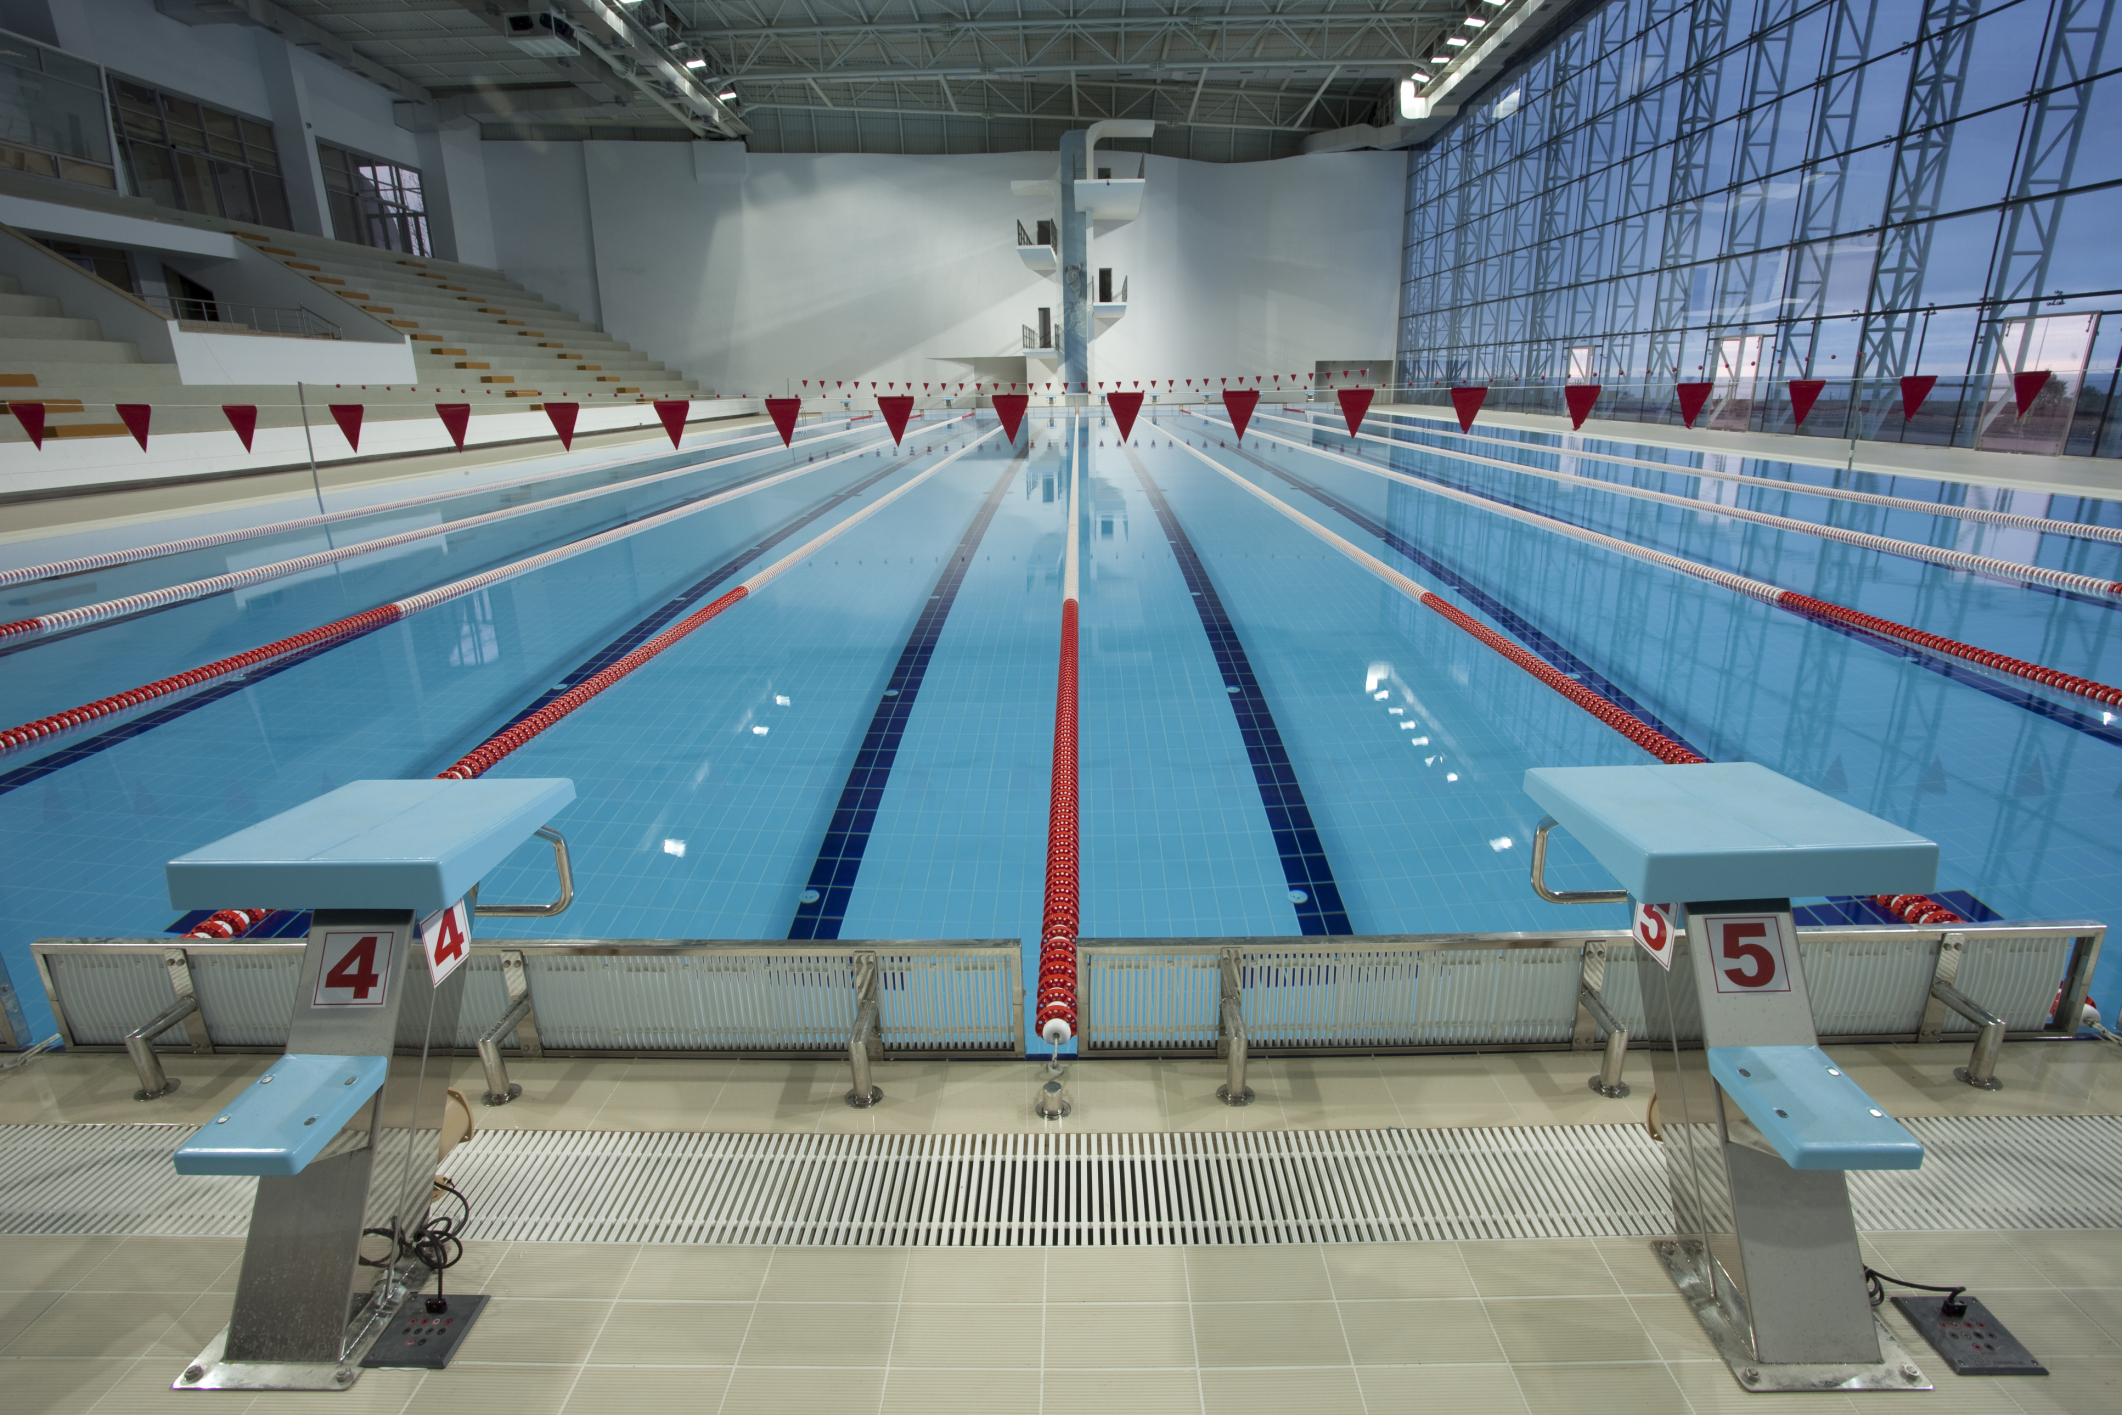 Olympic swimming pool empty and calm